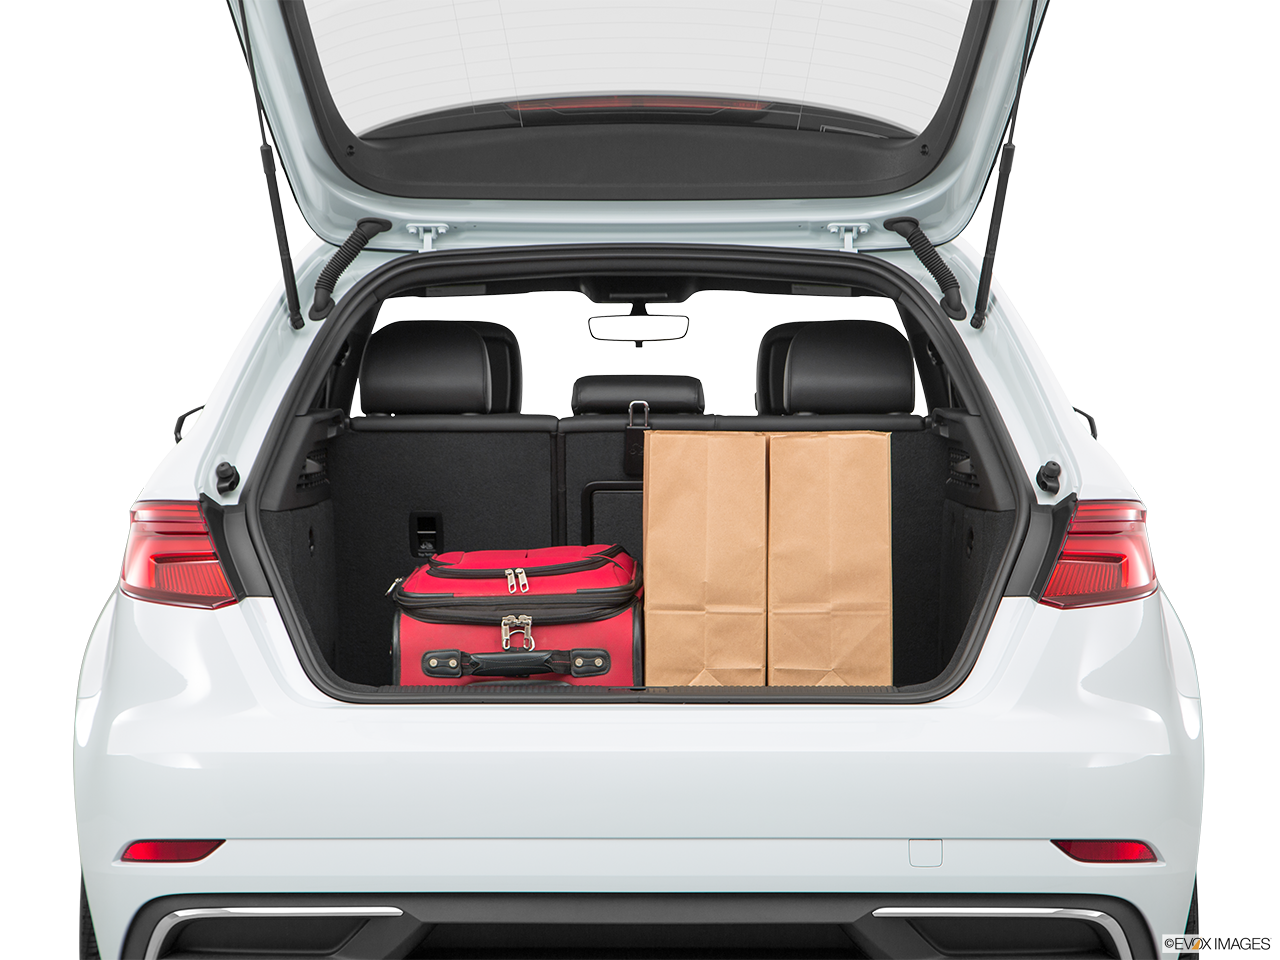 Trunk view of the Audi A3 e-tron